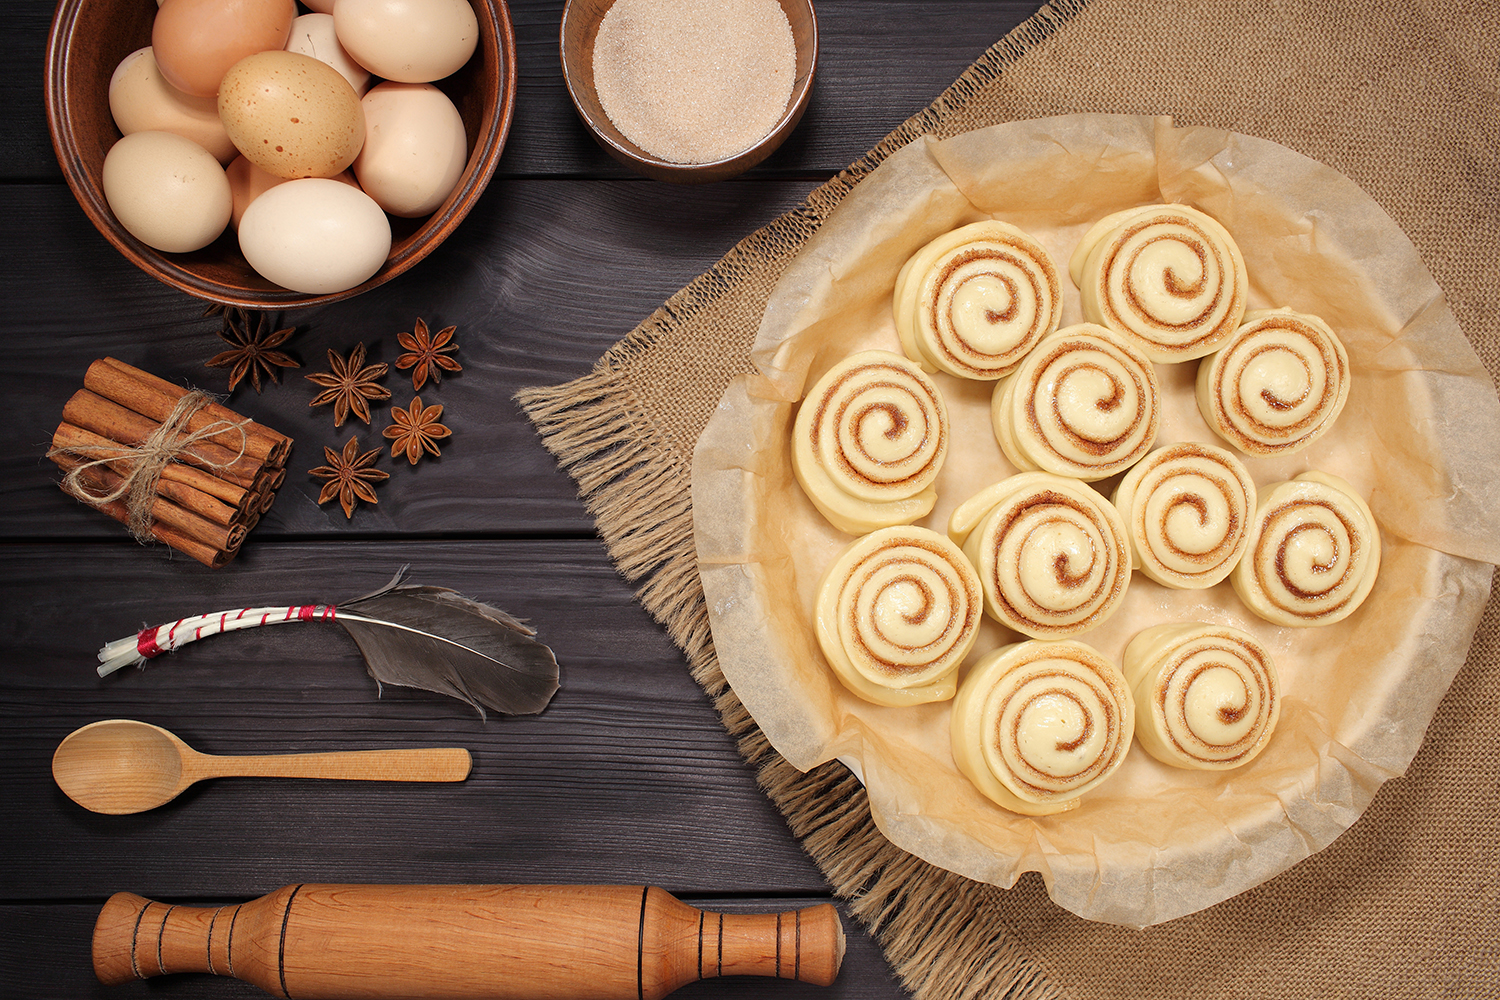 Set of 11 photos - raw buns: cinnamon rolls prepared for baking on a background of rustic table example image 2